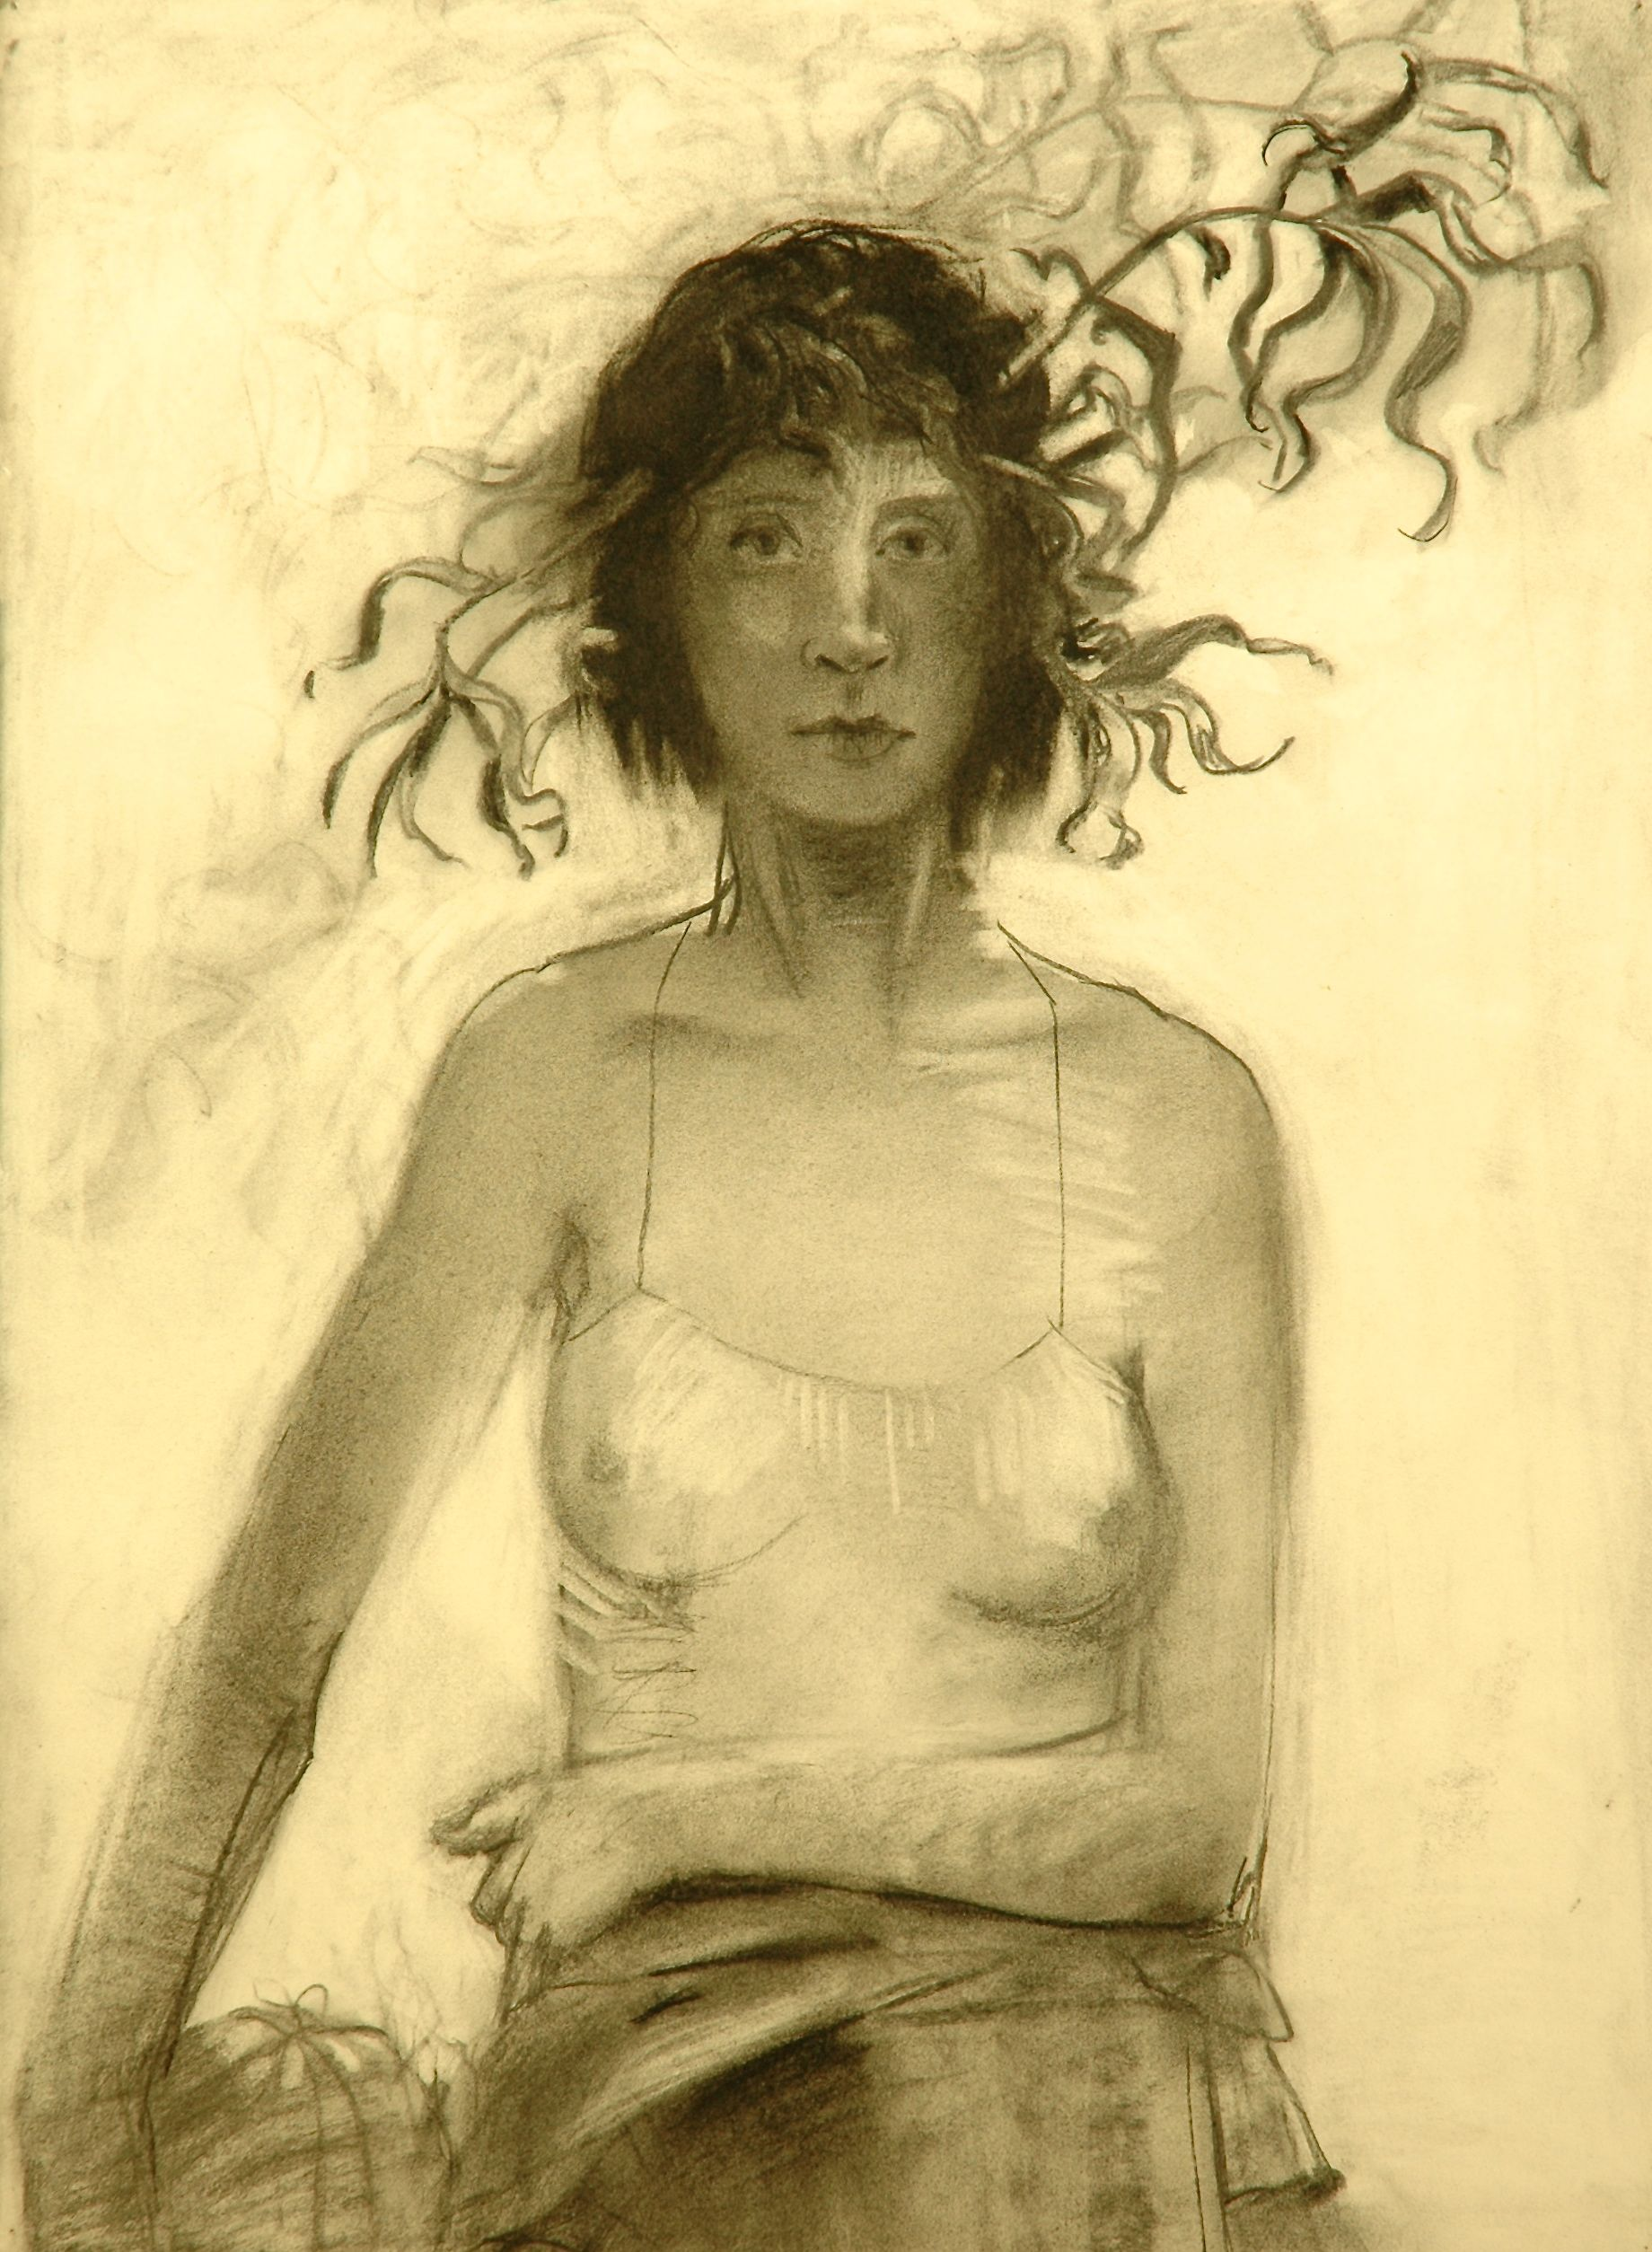 LESLIE BELL, charcoal drawing